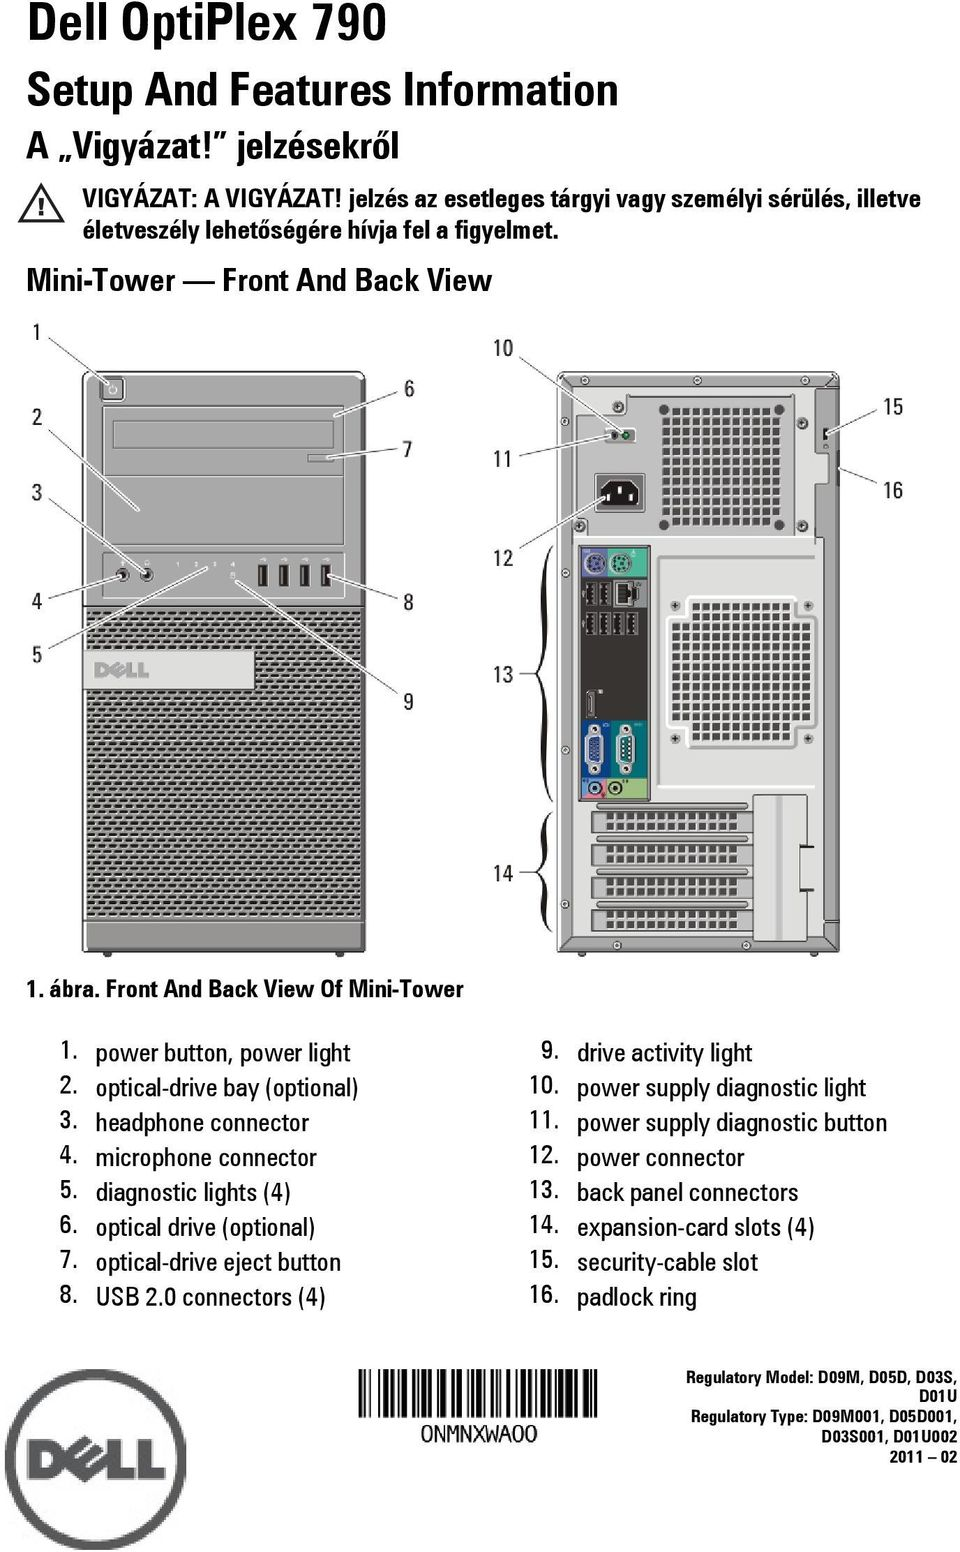 optical-drive bay (optional) 3. headphone connector 4. microphone connector 5. diagnostic lights (4) 6. optical drive (optional) 7. optical-drive eject button 8. USB 2.0 connectors (4) 9.